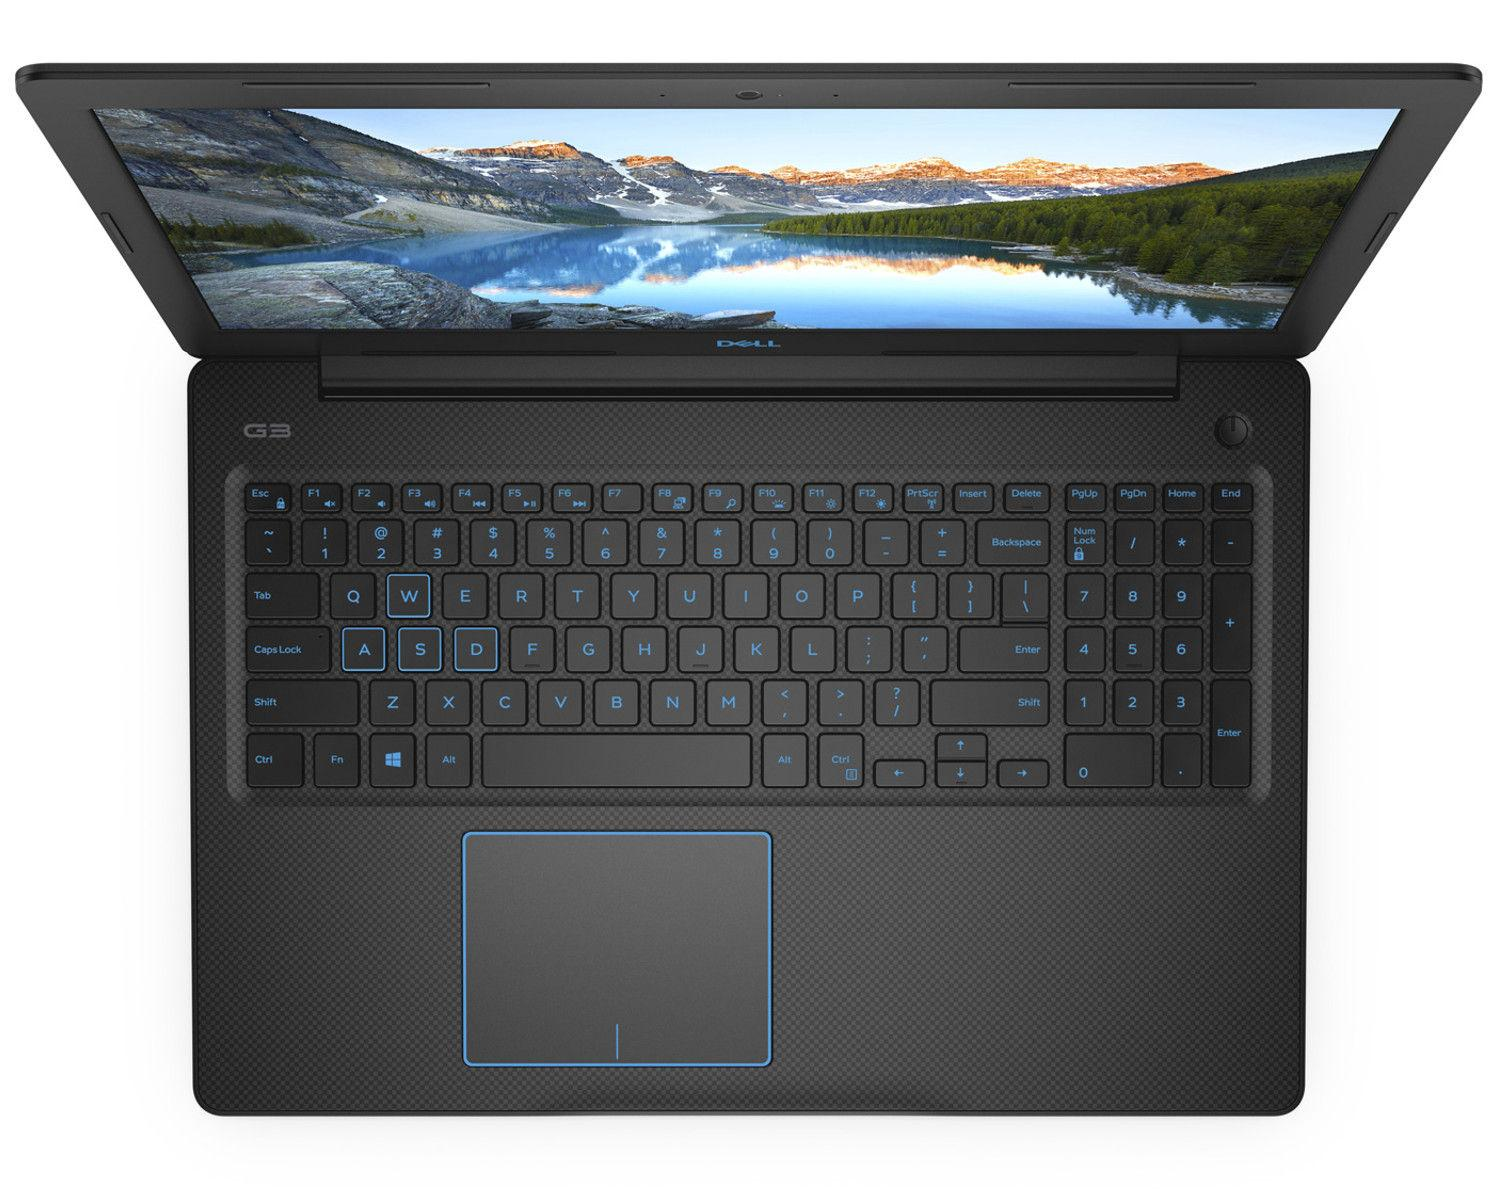 Ordinateur portable Dell Inspiron Gaming G3 17 3779 1901 (LOKI-G-17CFL1901-209-P) Noir - GTX 1060, SSD, i5 - photo 3